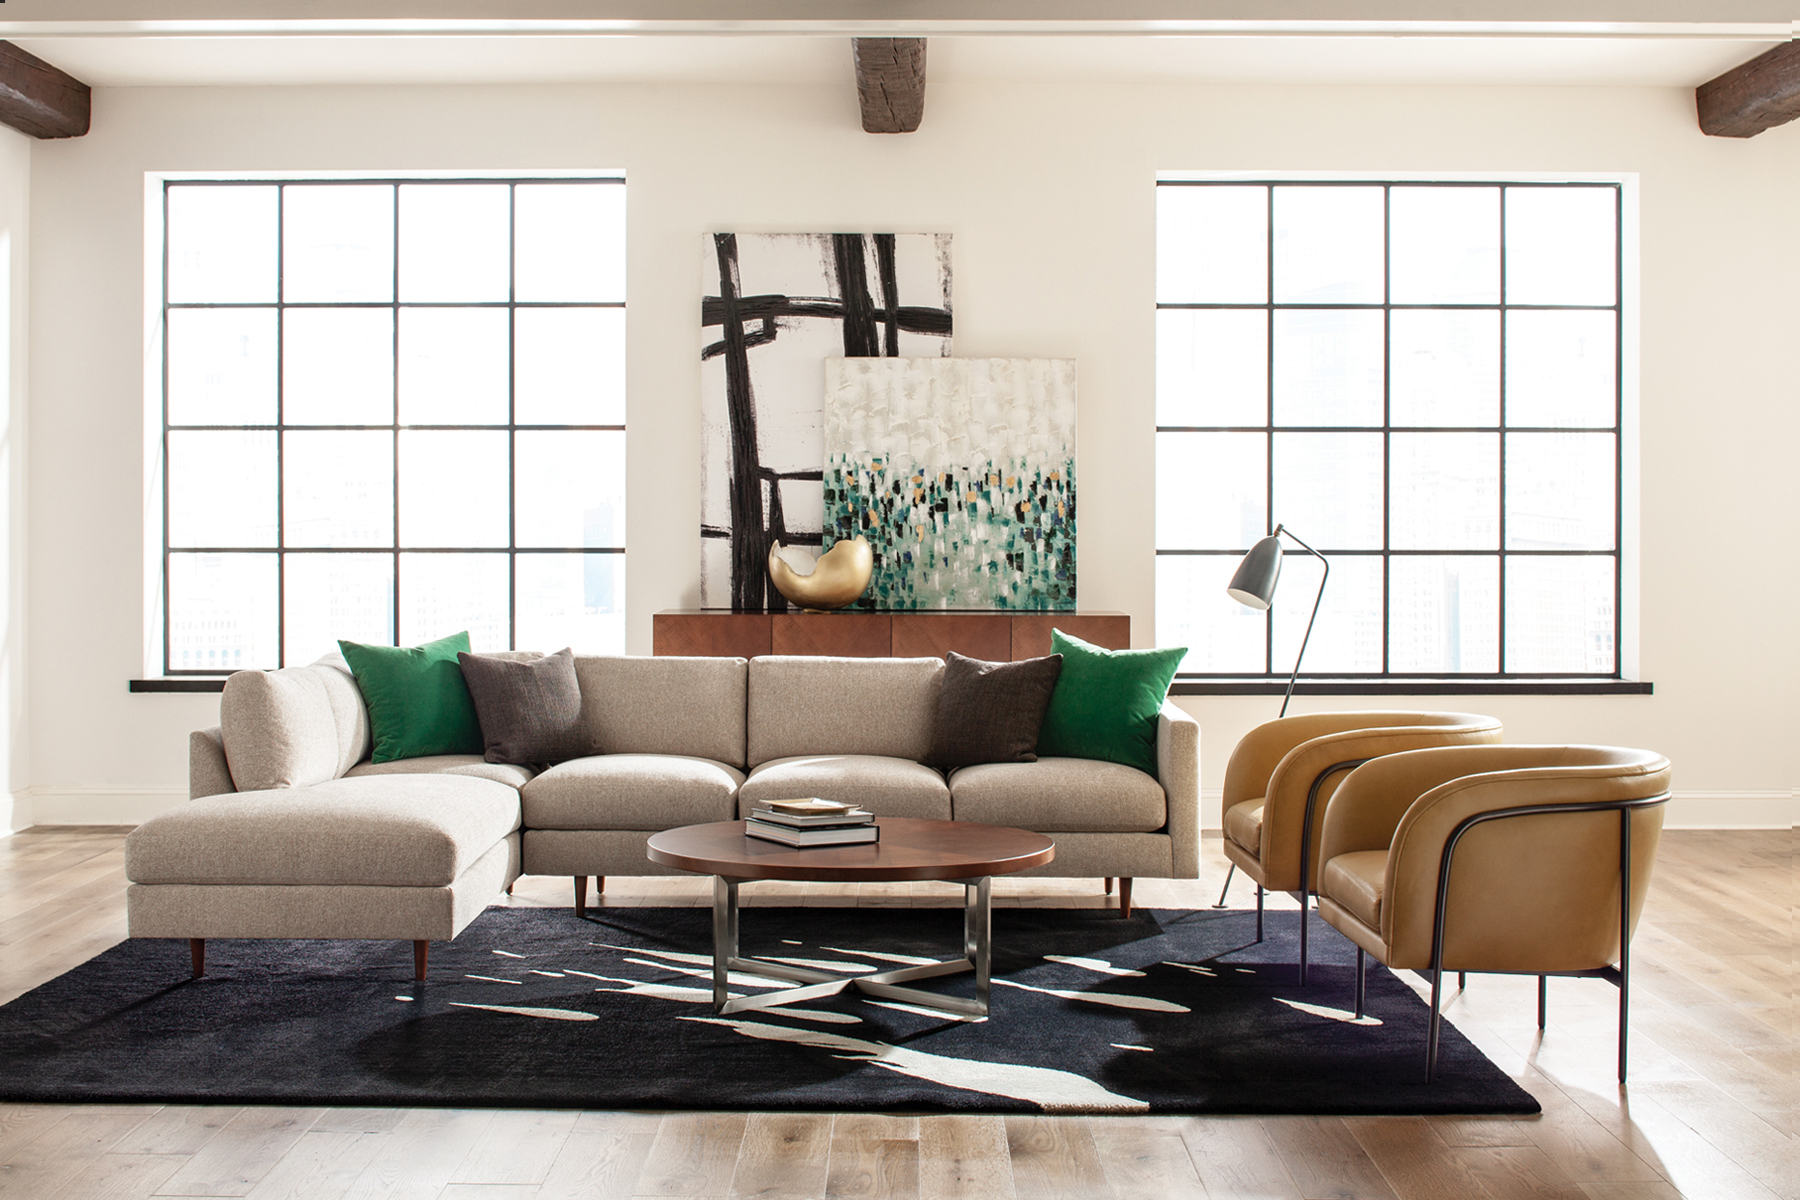 855 Design Classic Sectional from Thayer Coggin